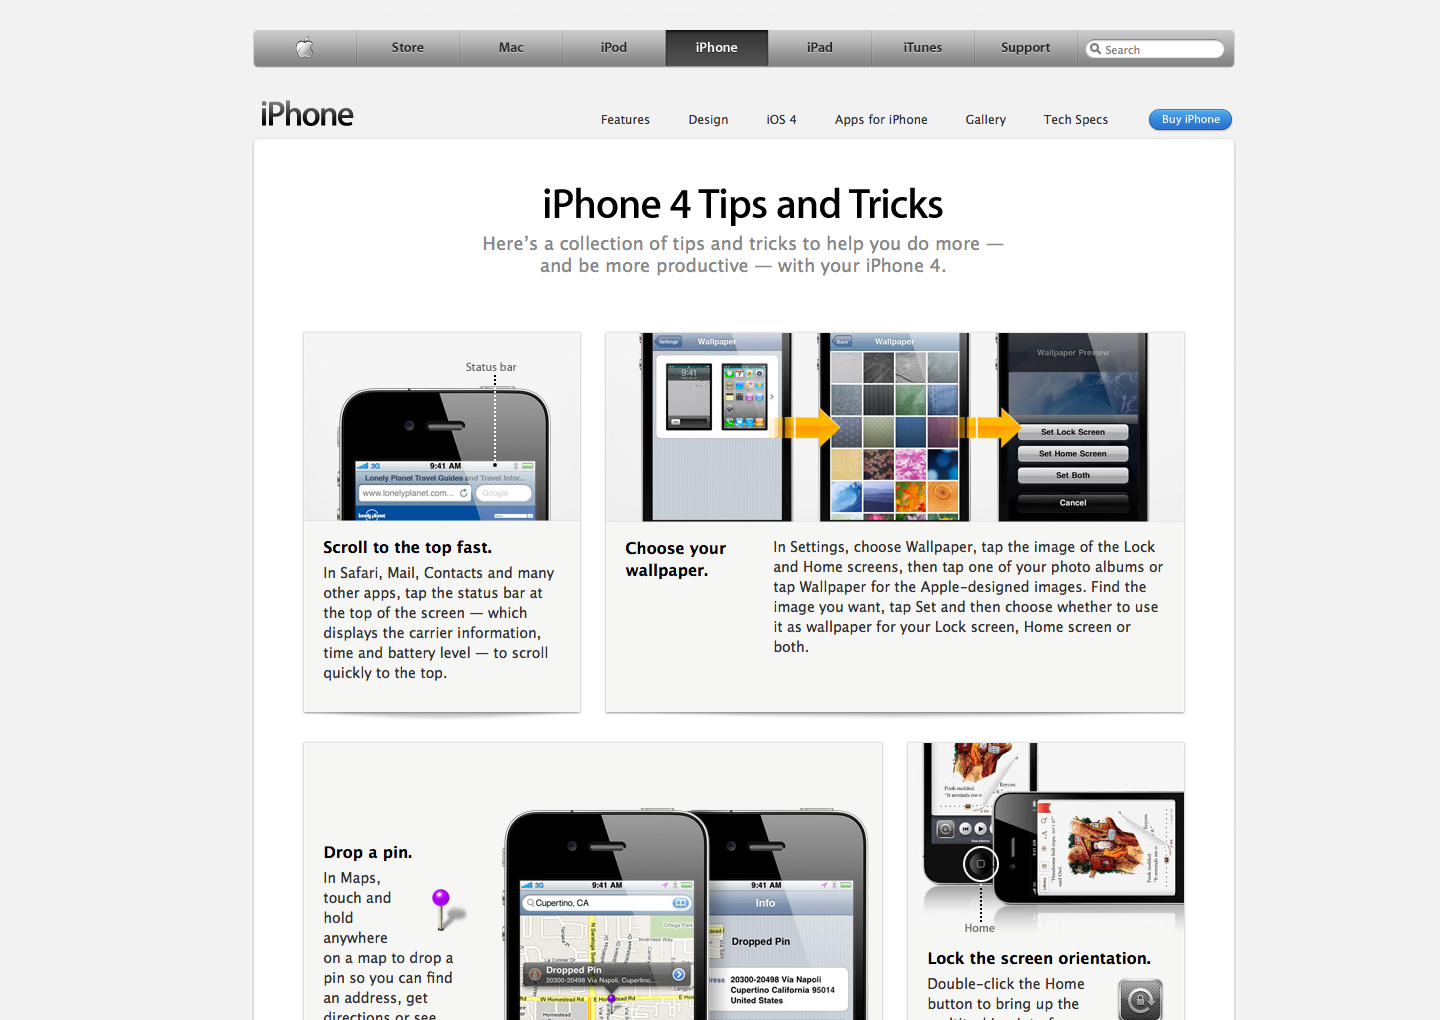 iPhone 4 Tips and Tricks on Apple.com